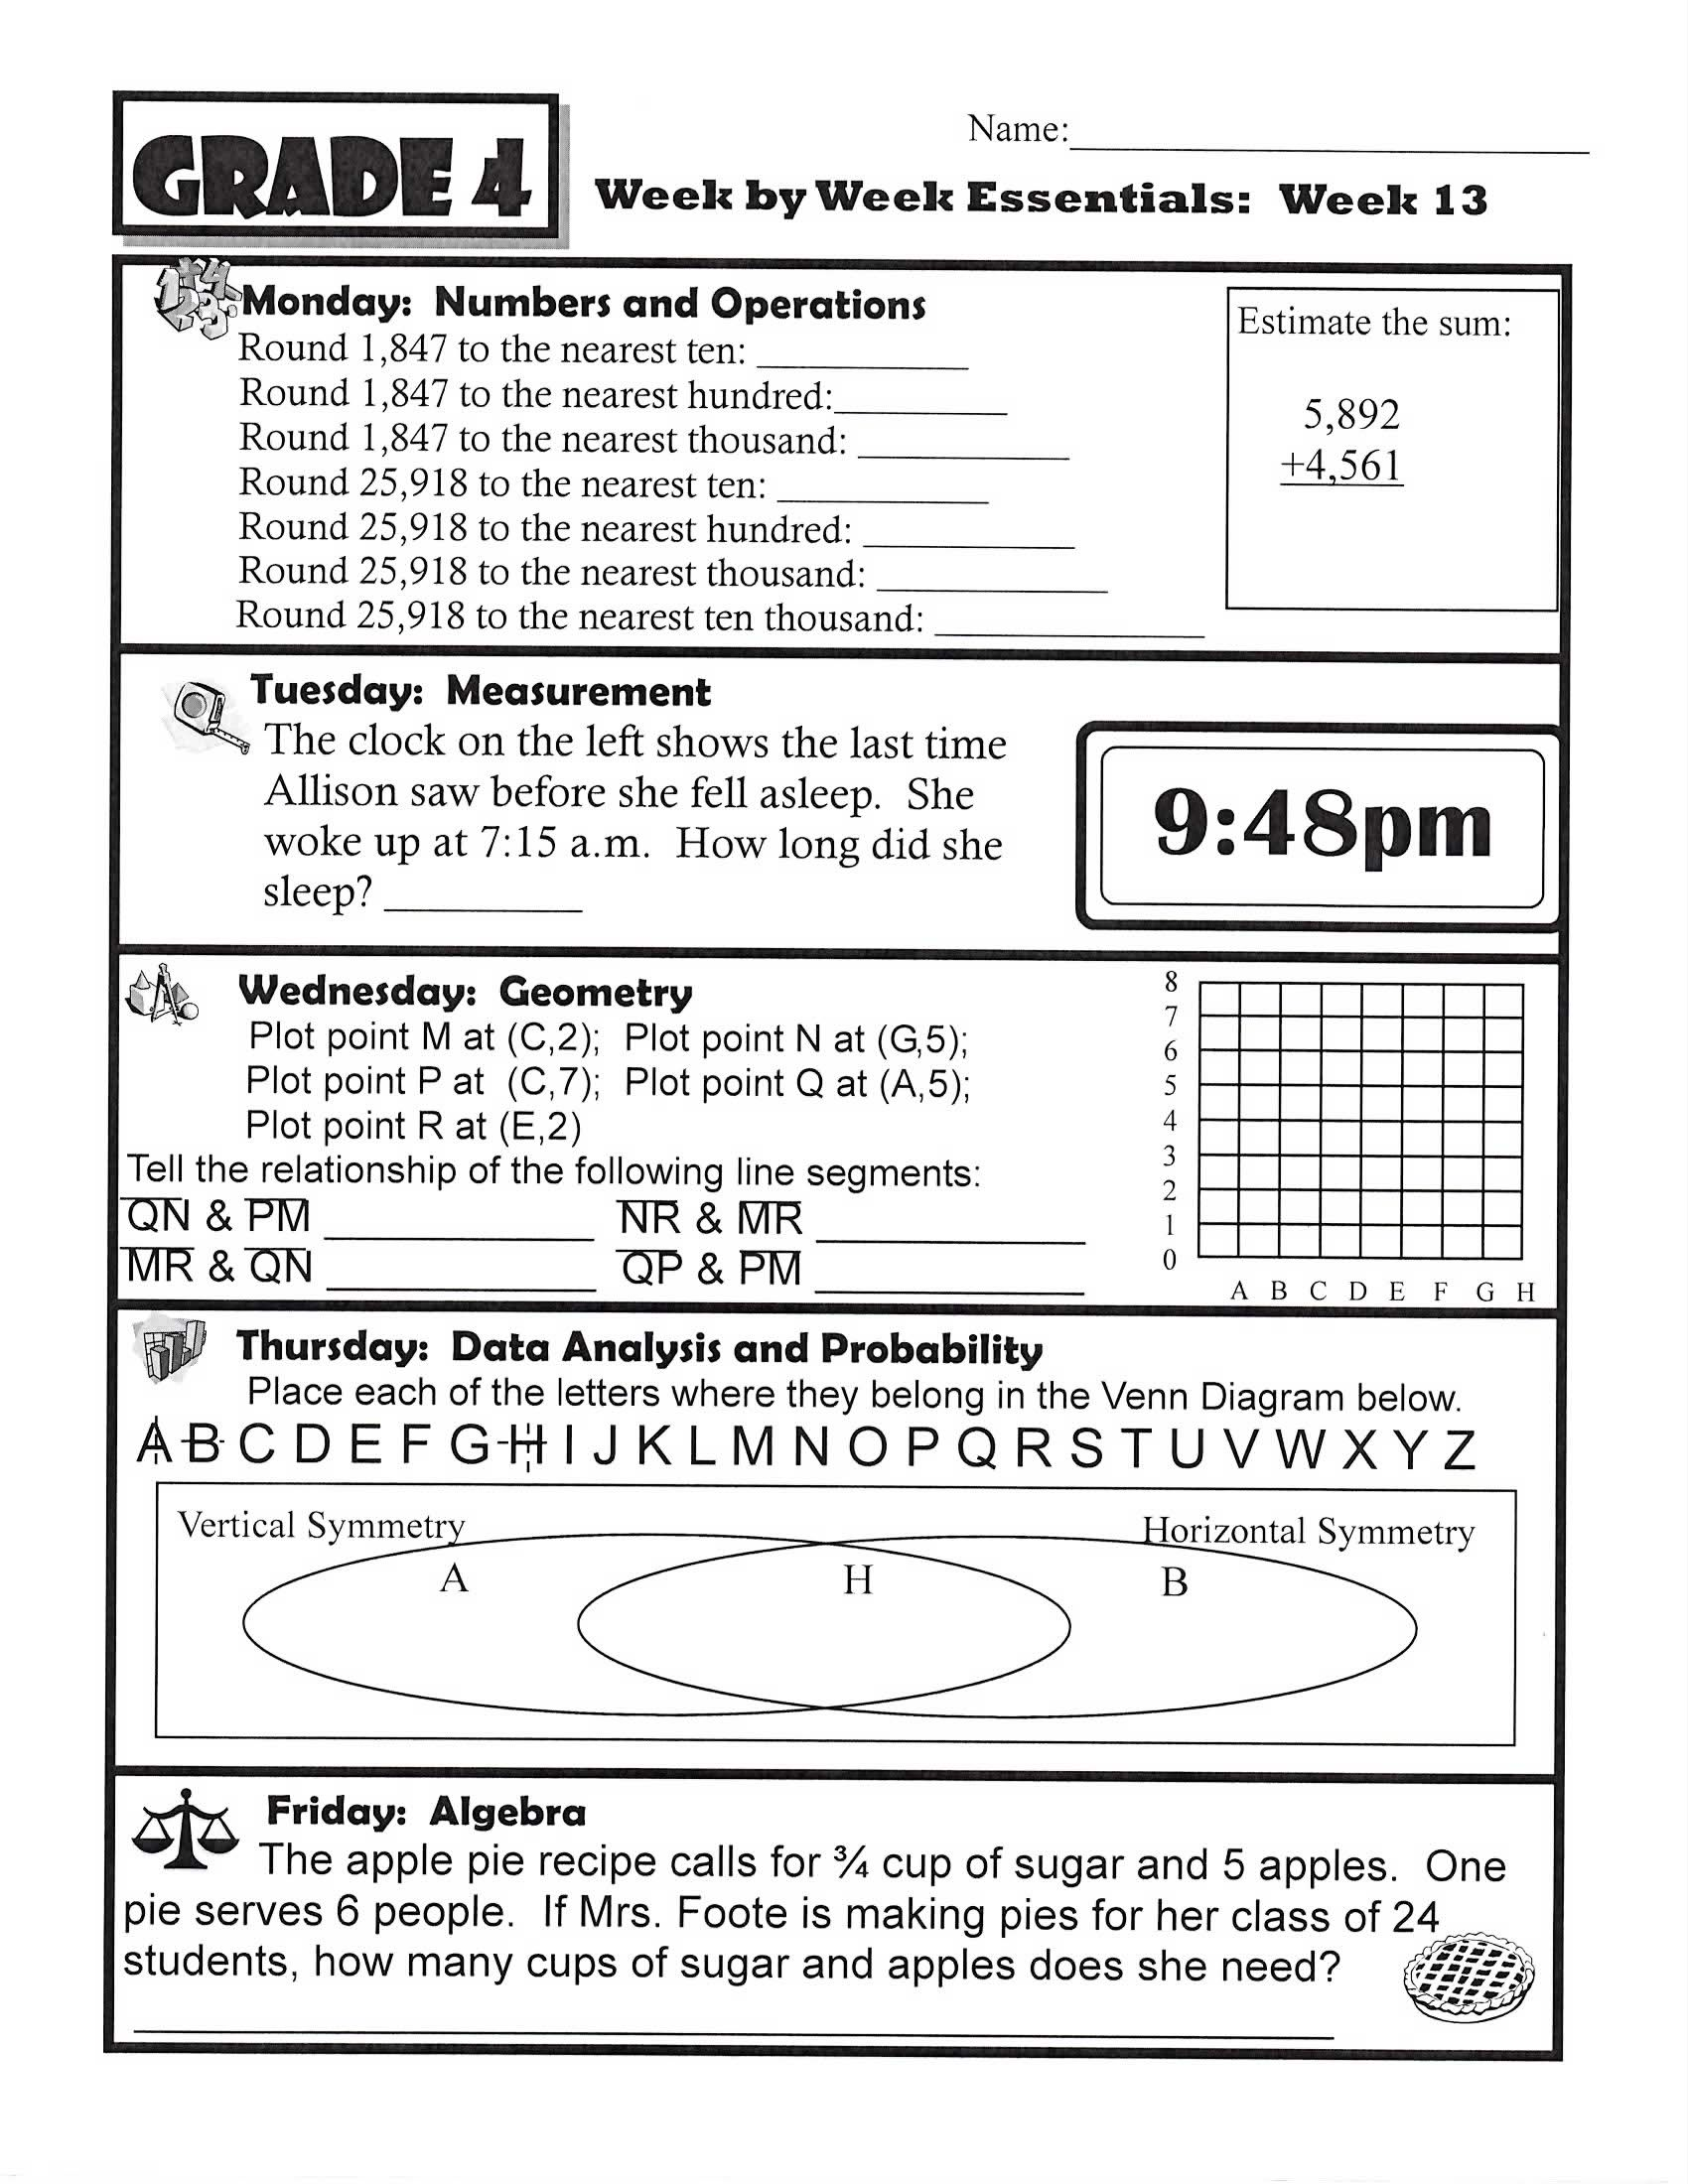 Homework help 4th grade math